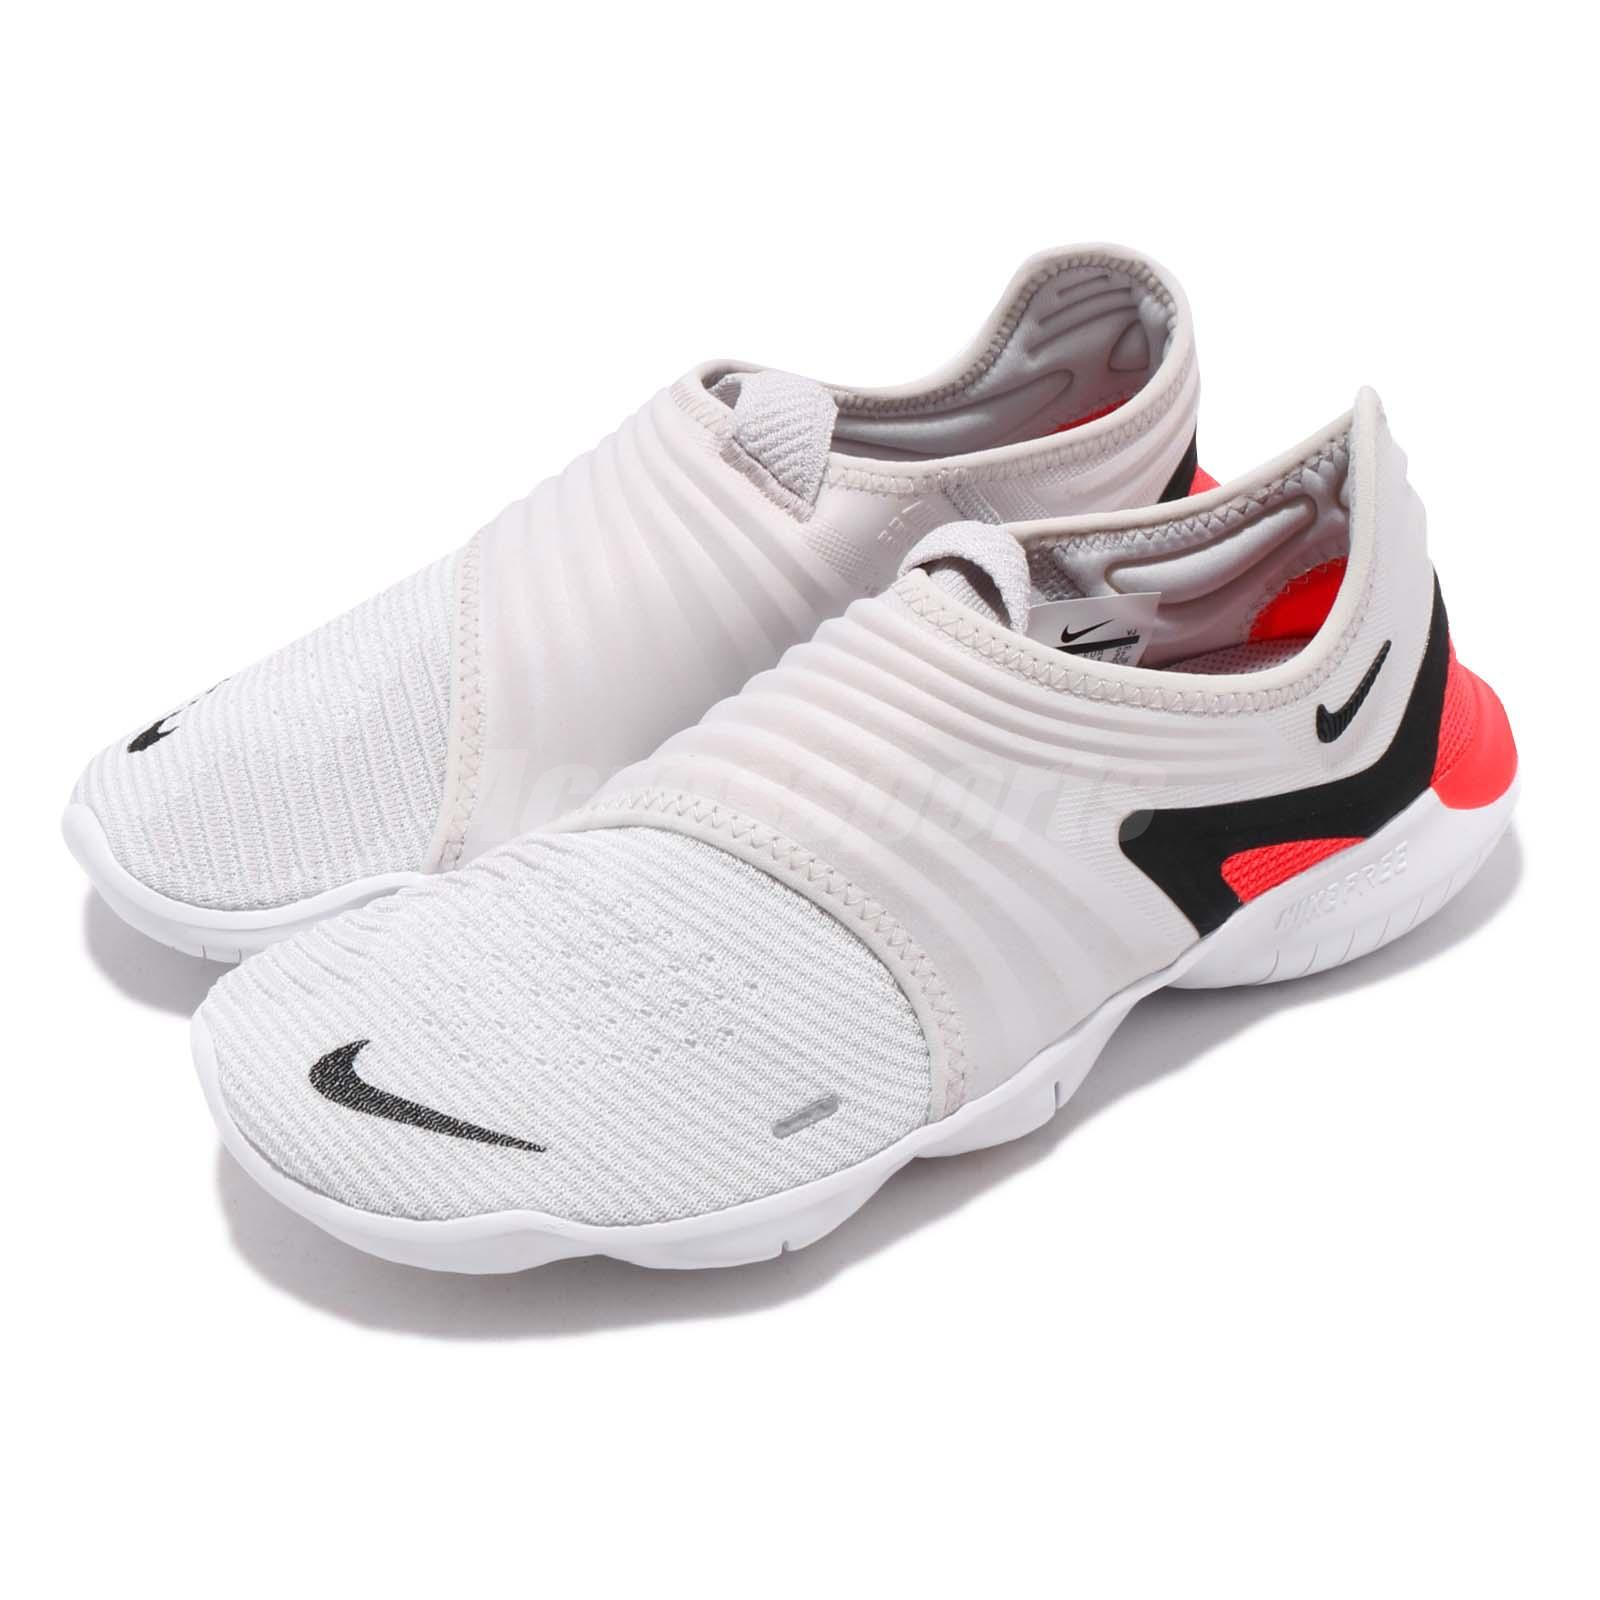 hot sale online 3c7c0 7006d Details about Nike Free RN Flyknit 3.0 Grey Black White Red Men Running  Shoes AQ5707-002